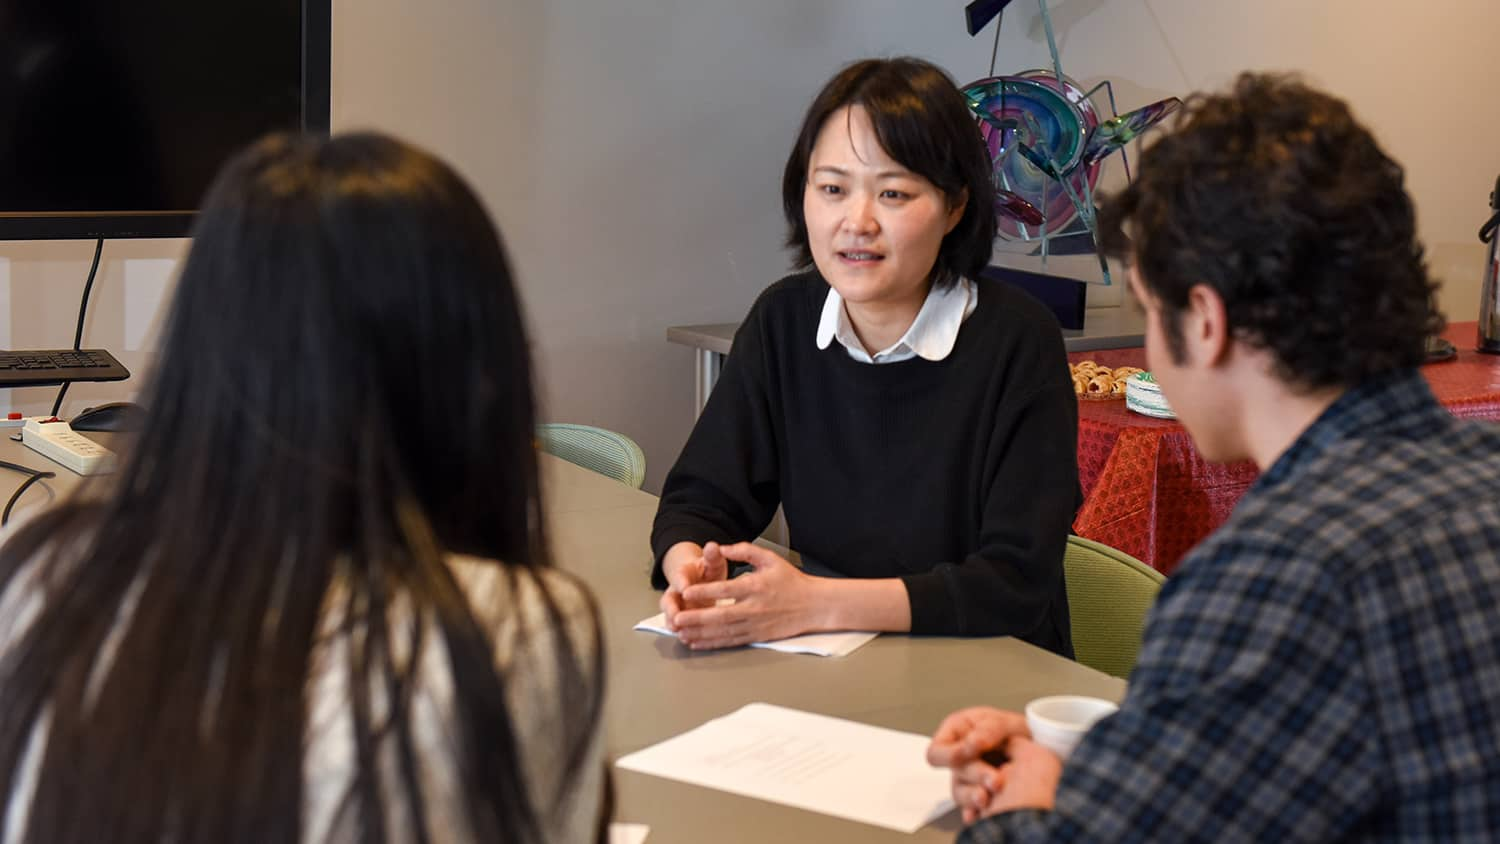 A faculty member talking with two students